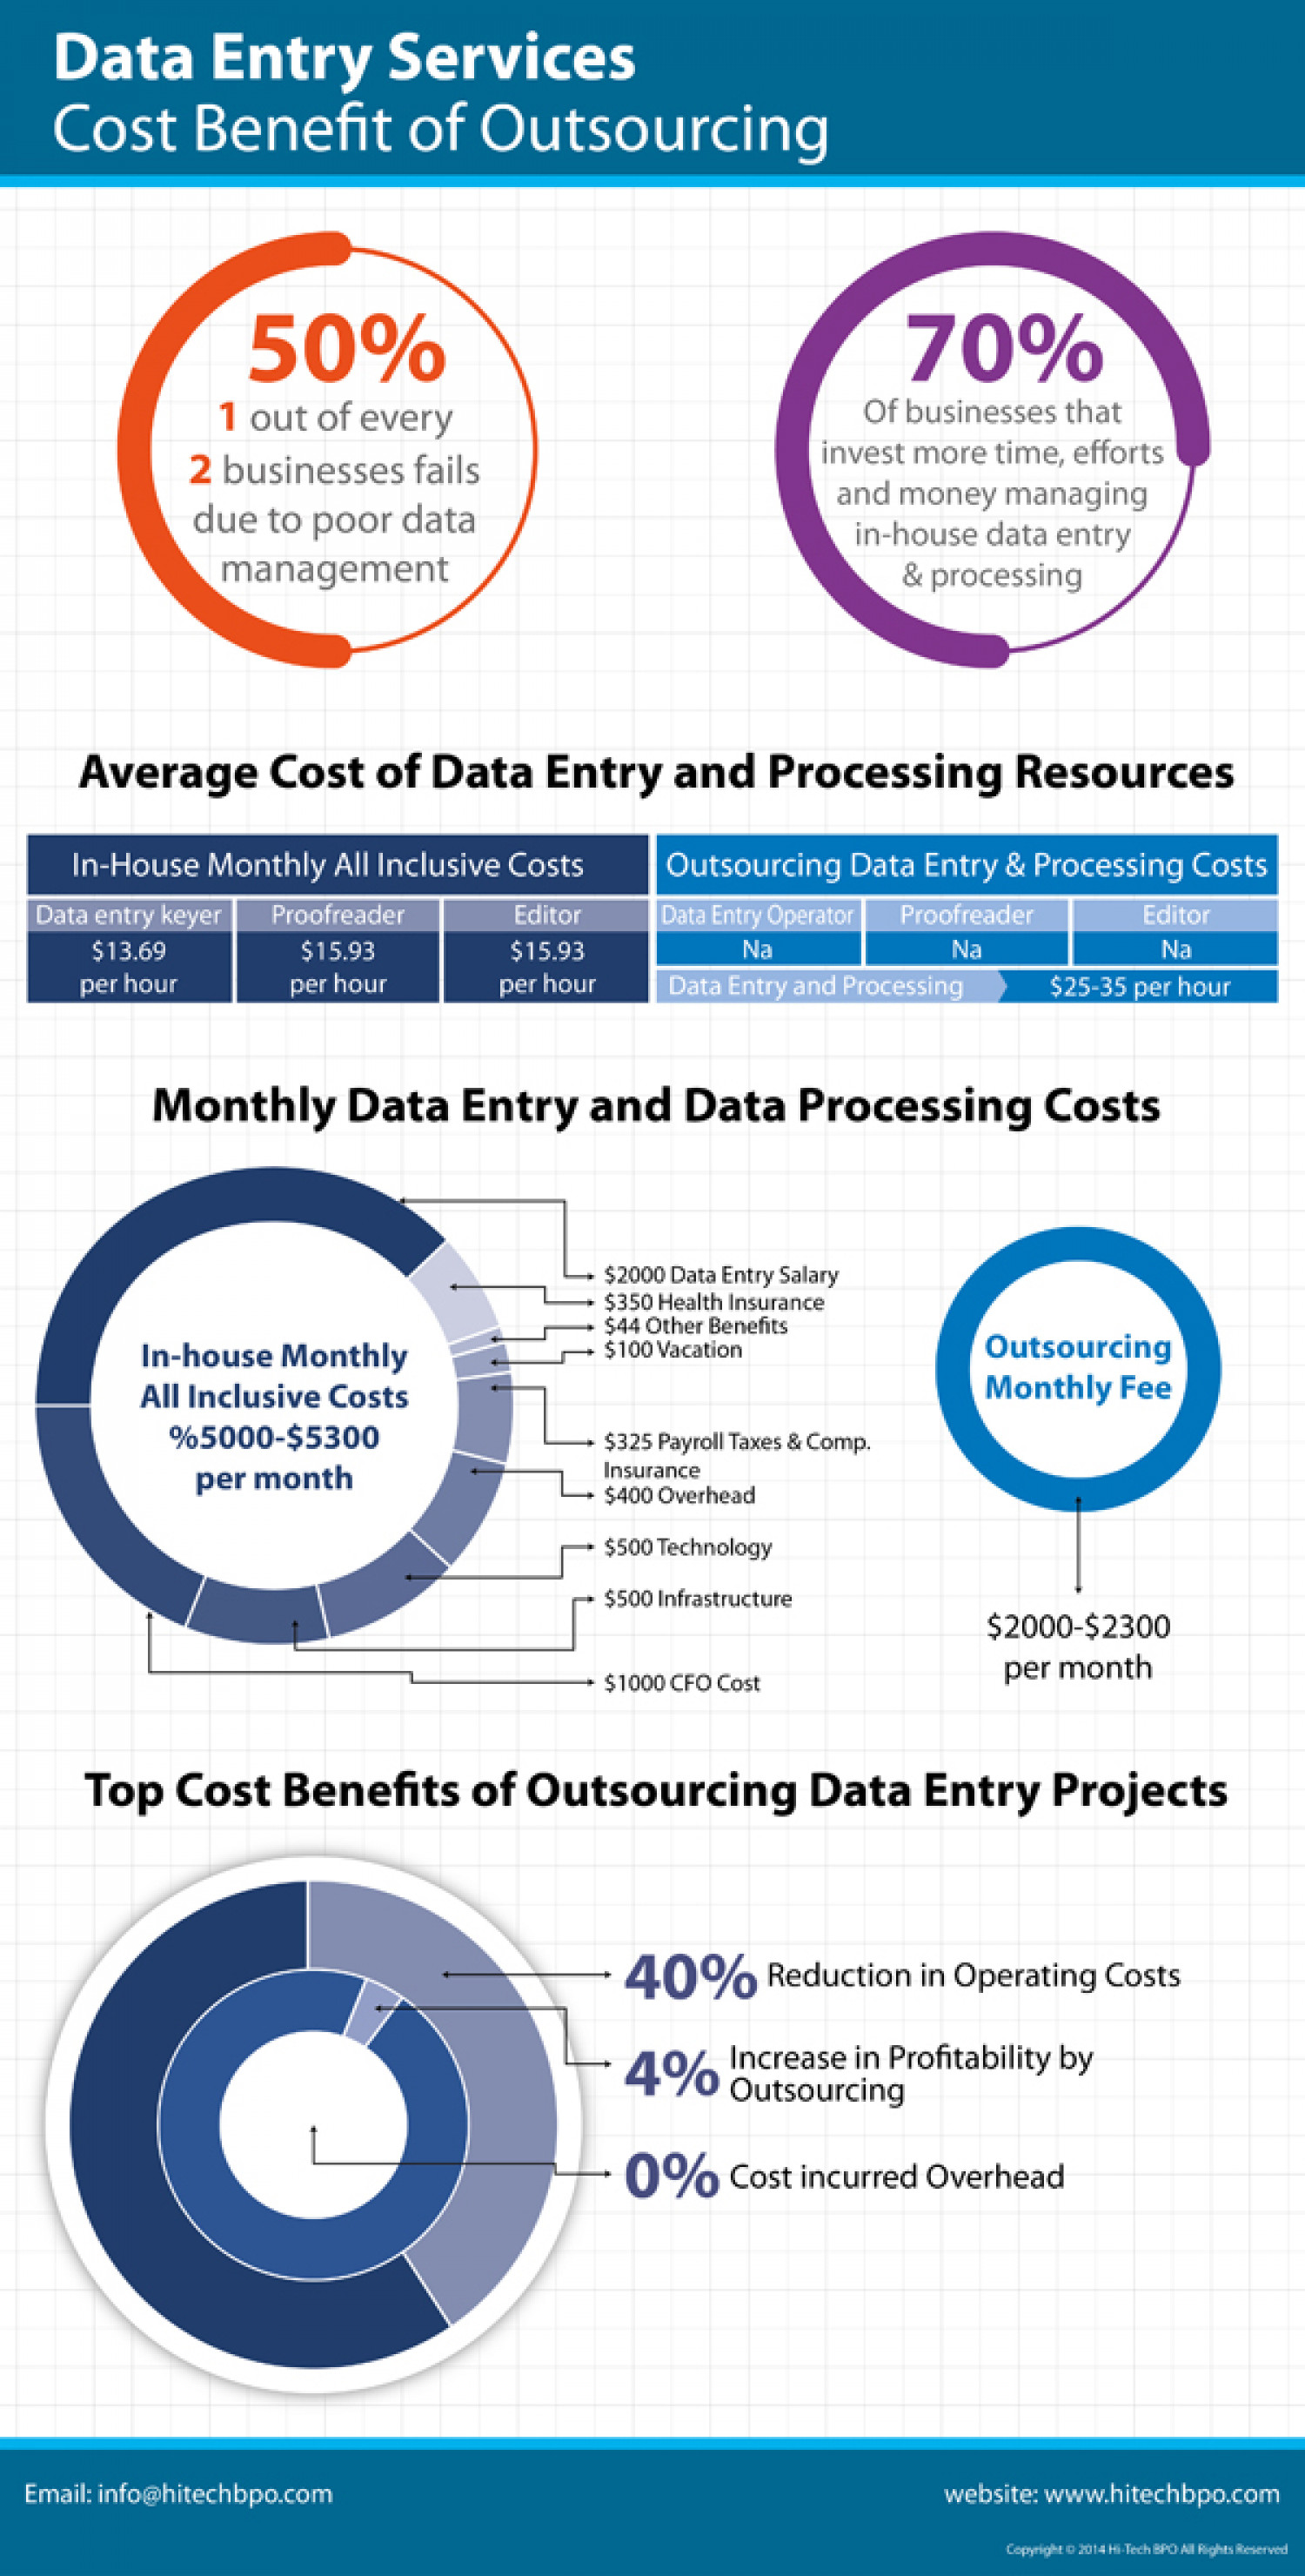 Data Entry Services – Cost Benefit of Outsourcing Infographic